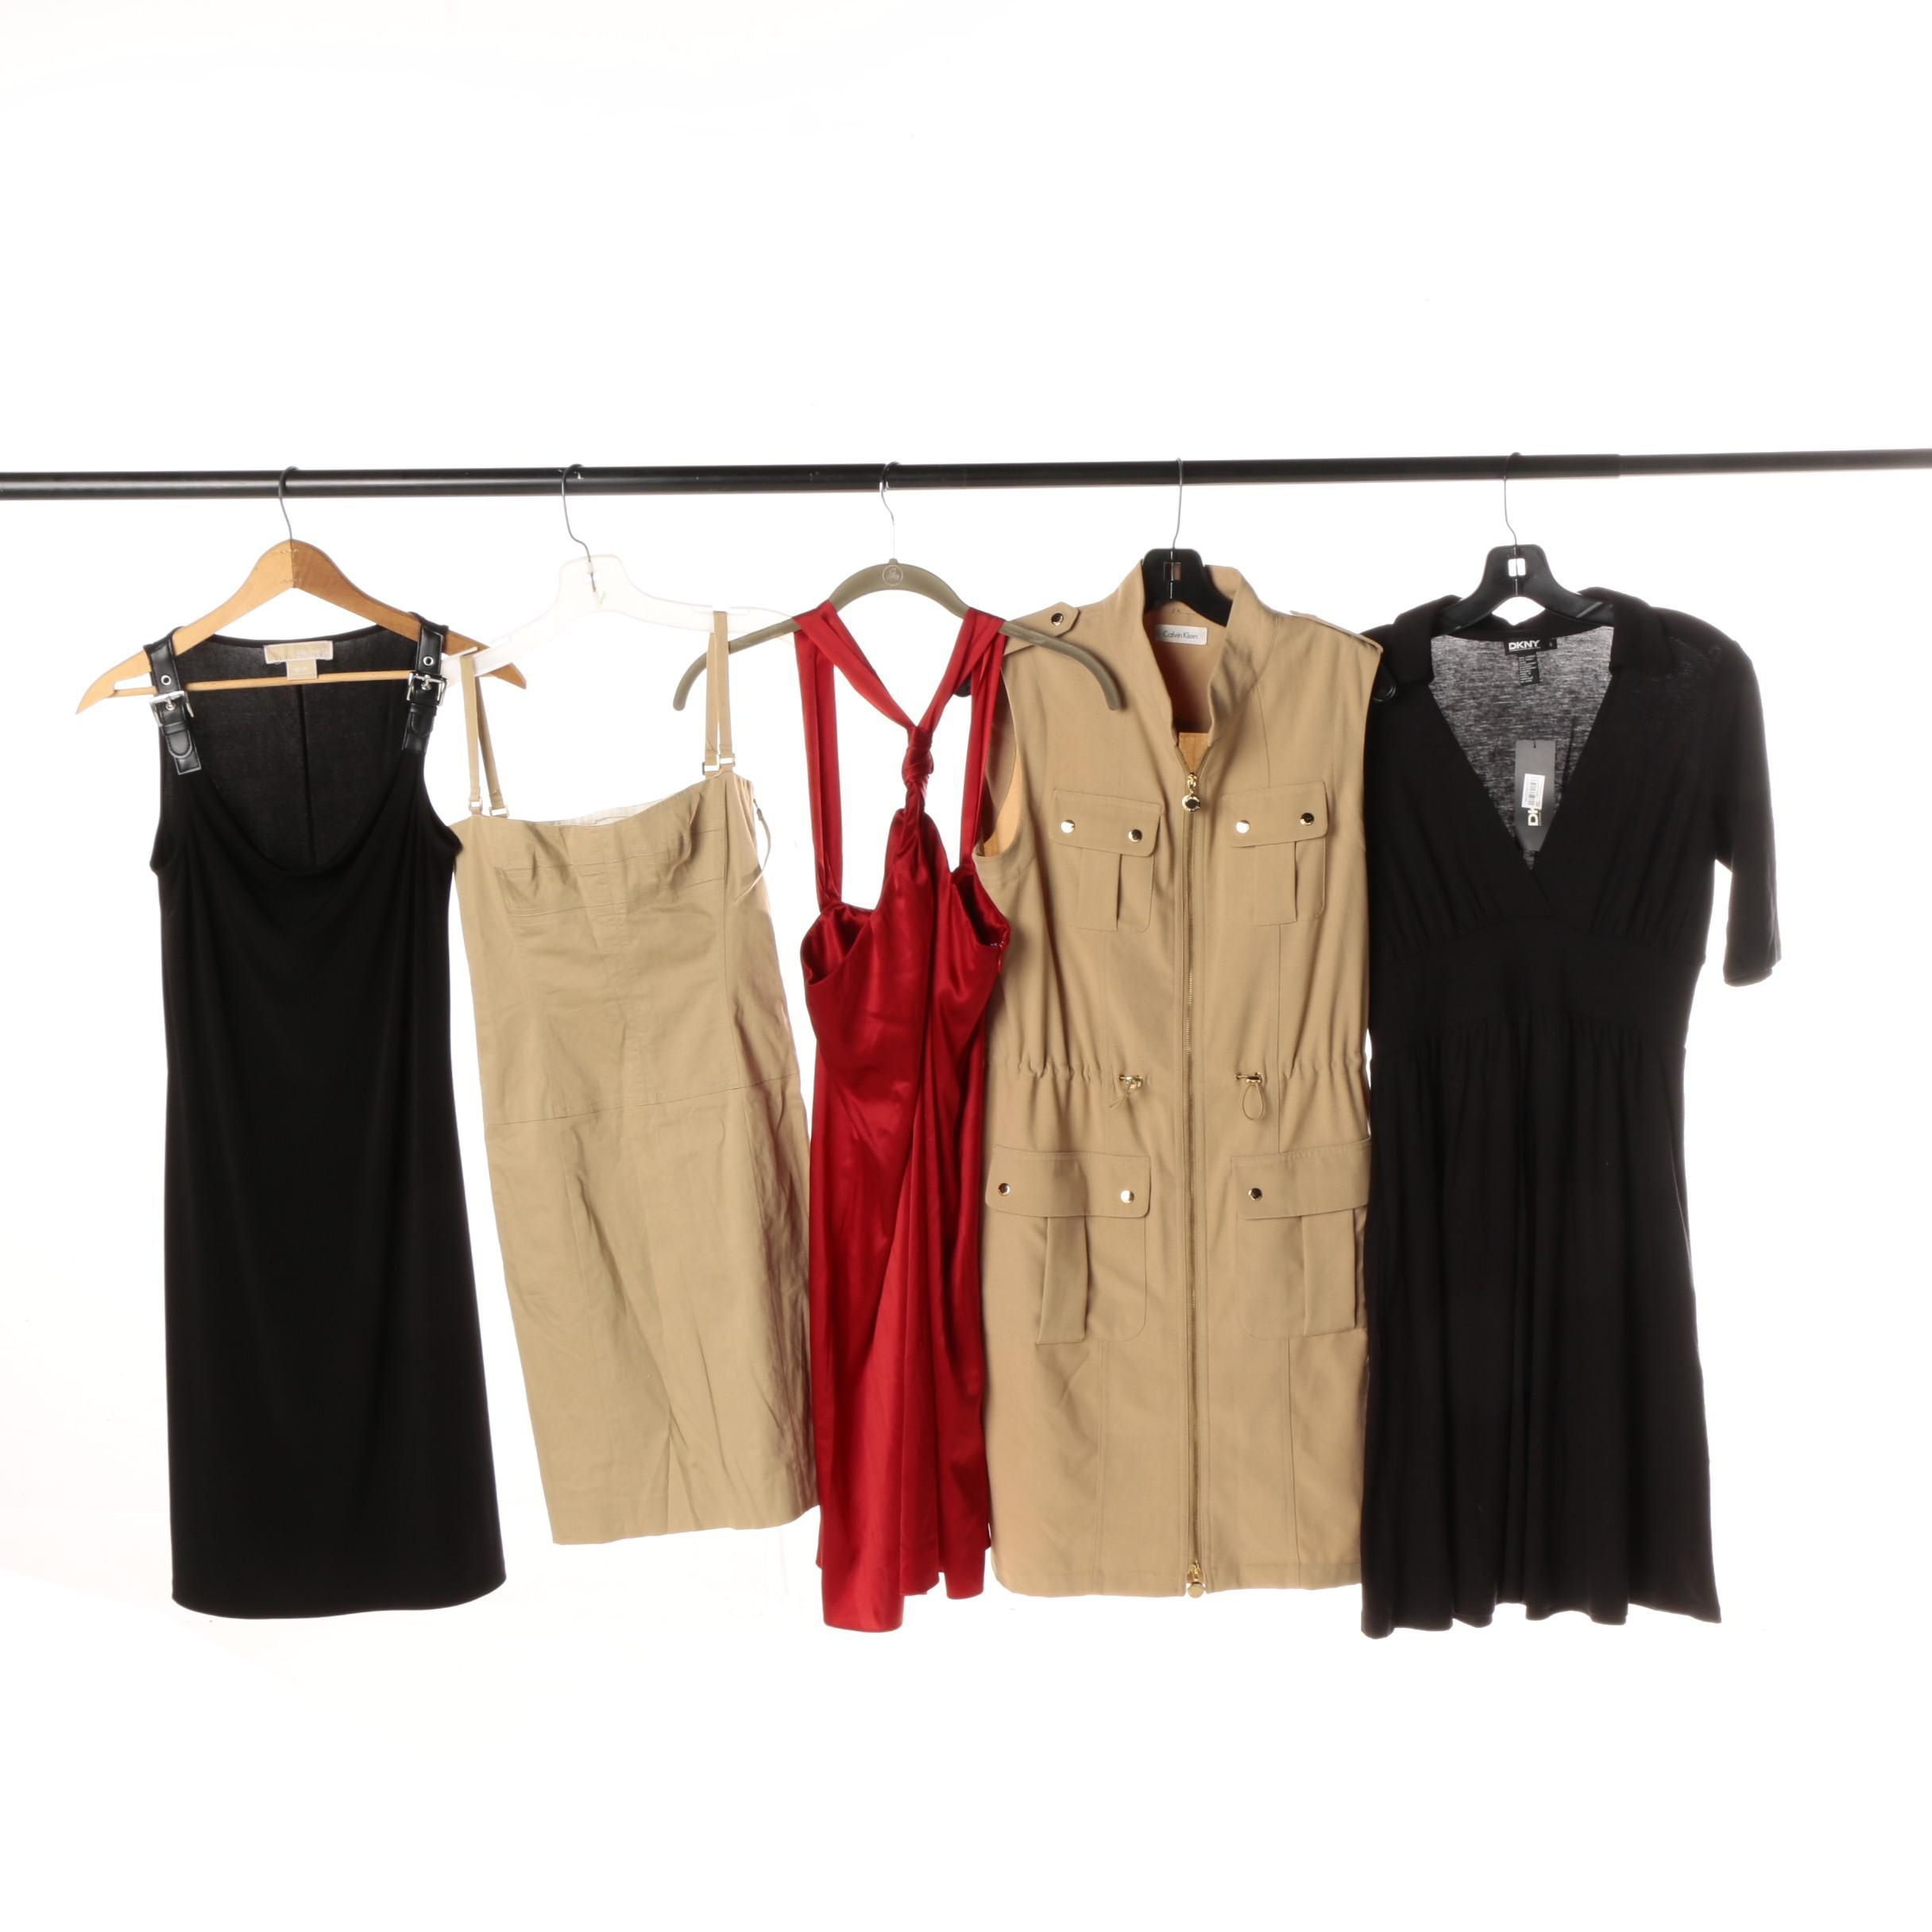 Women's Red, Black and Tan Dresses Including Calvin Klein and DKNY